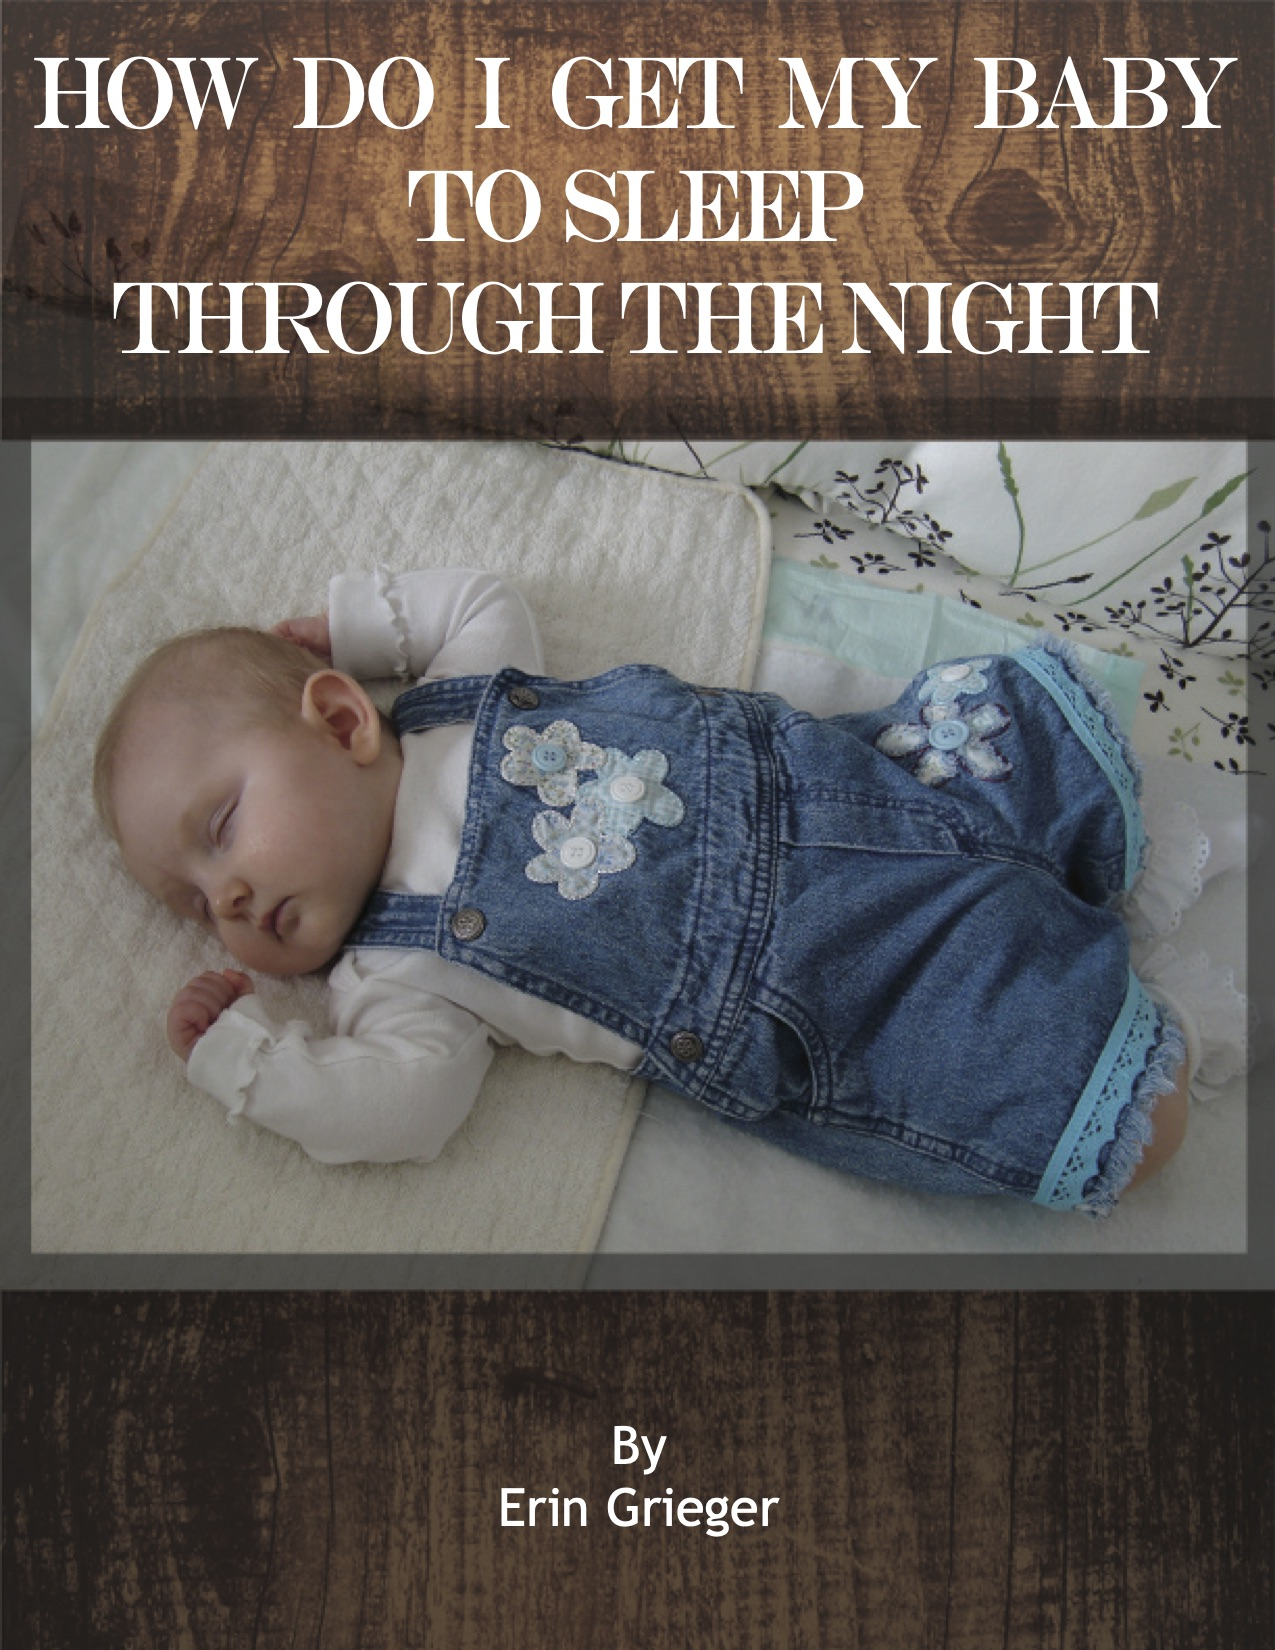 get your baby to sleep through the night